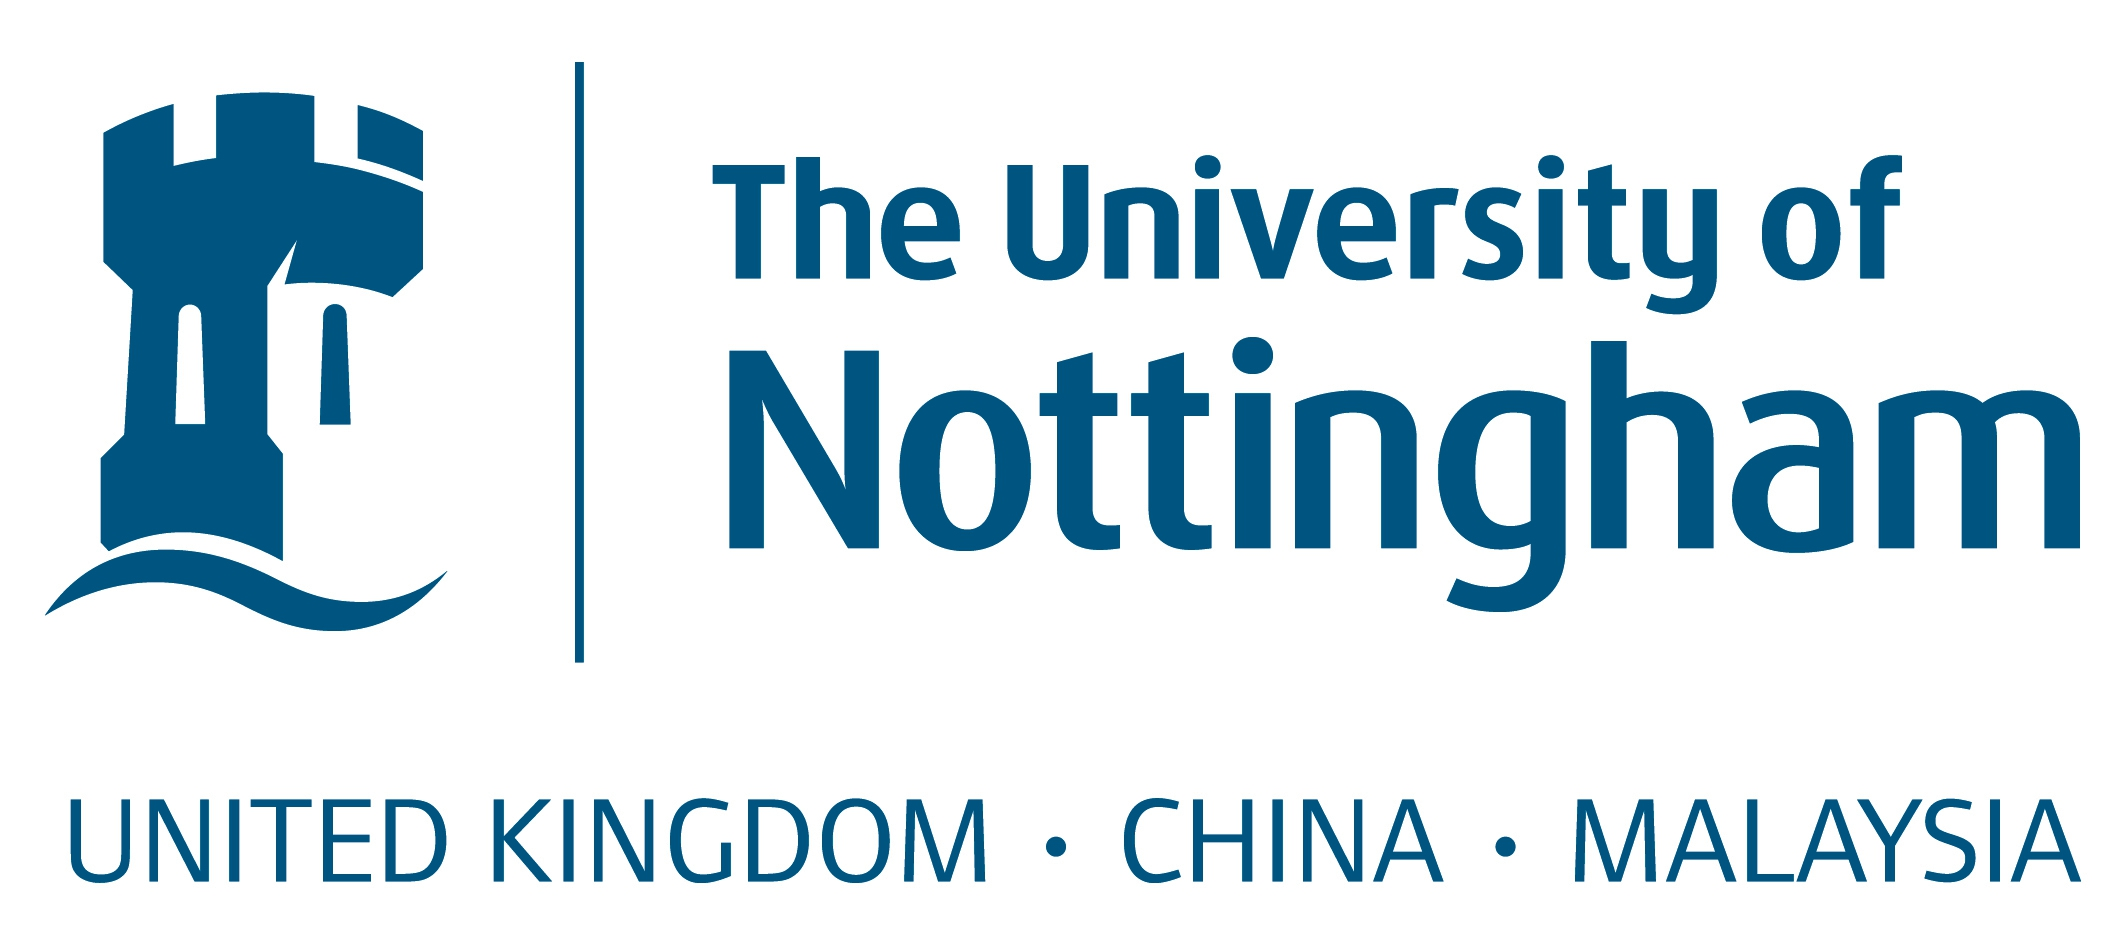 University of Nottingham Logo - University of Nottingham Logo